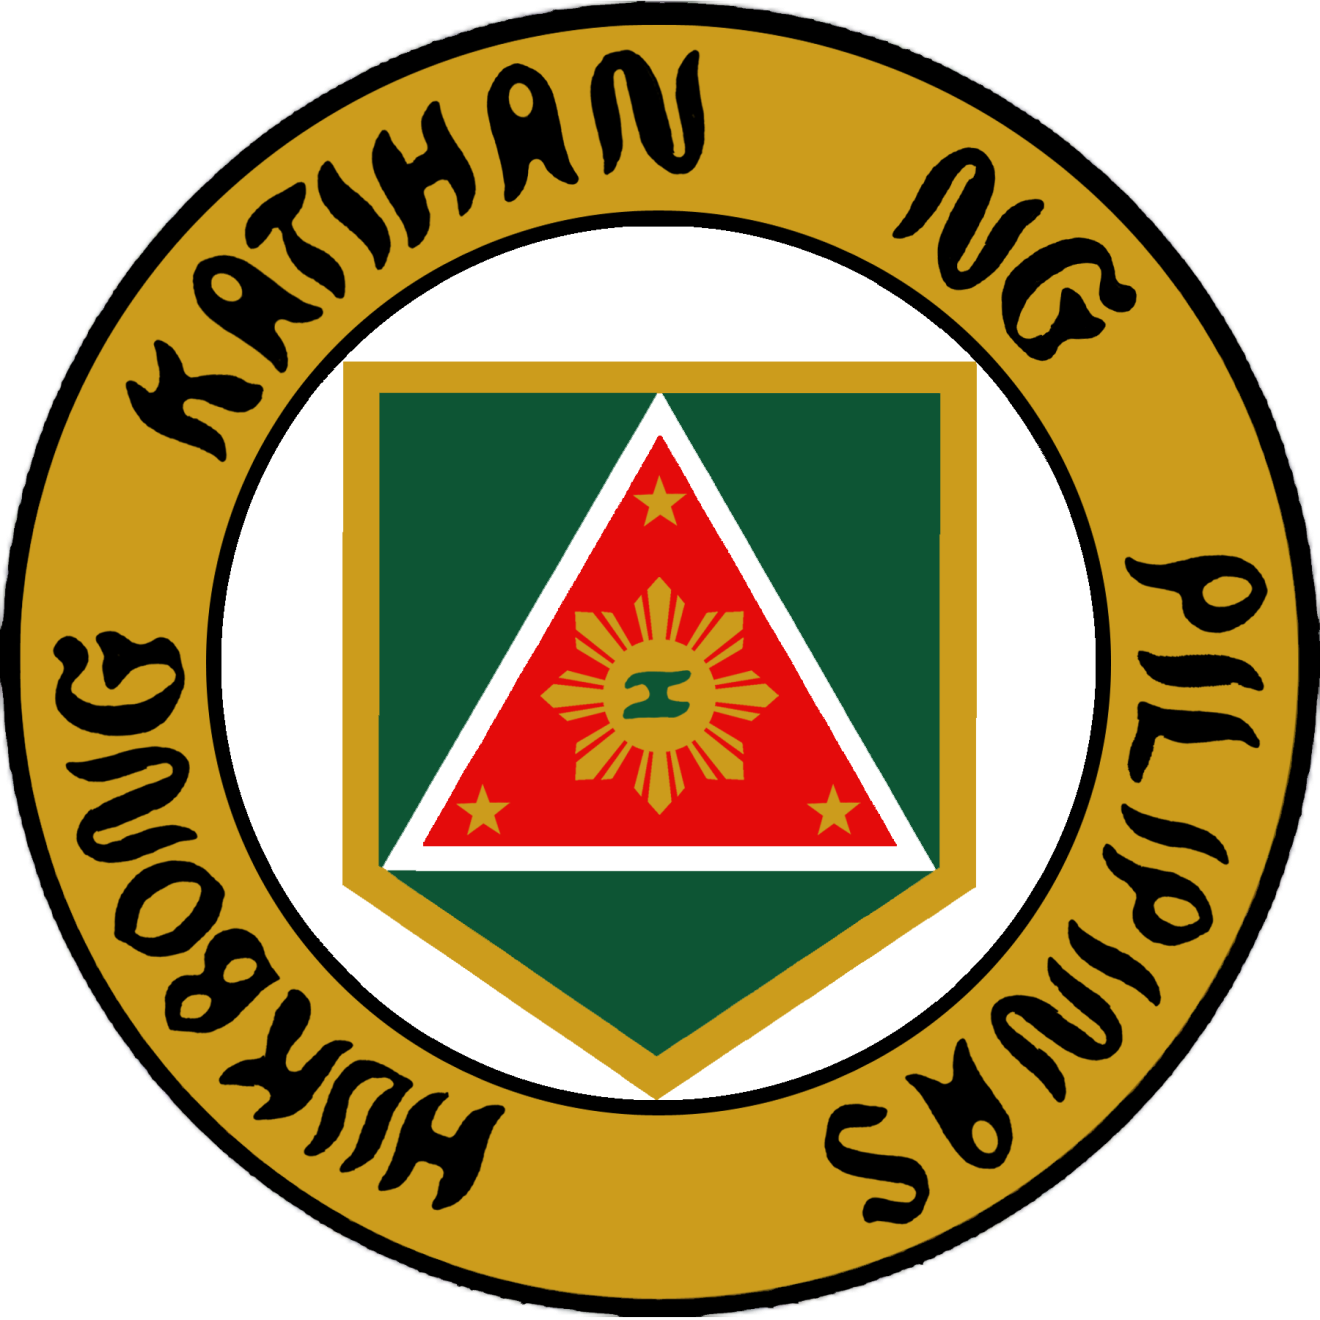 Army seal png. Philippine symbol the official